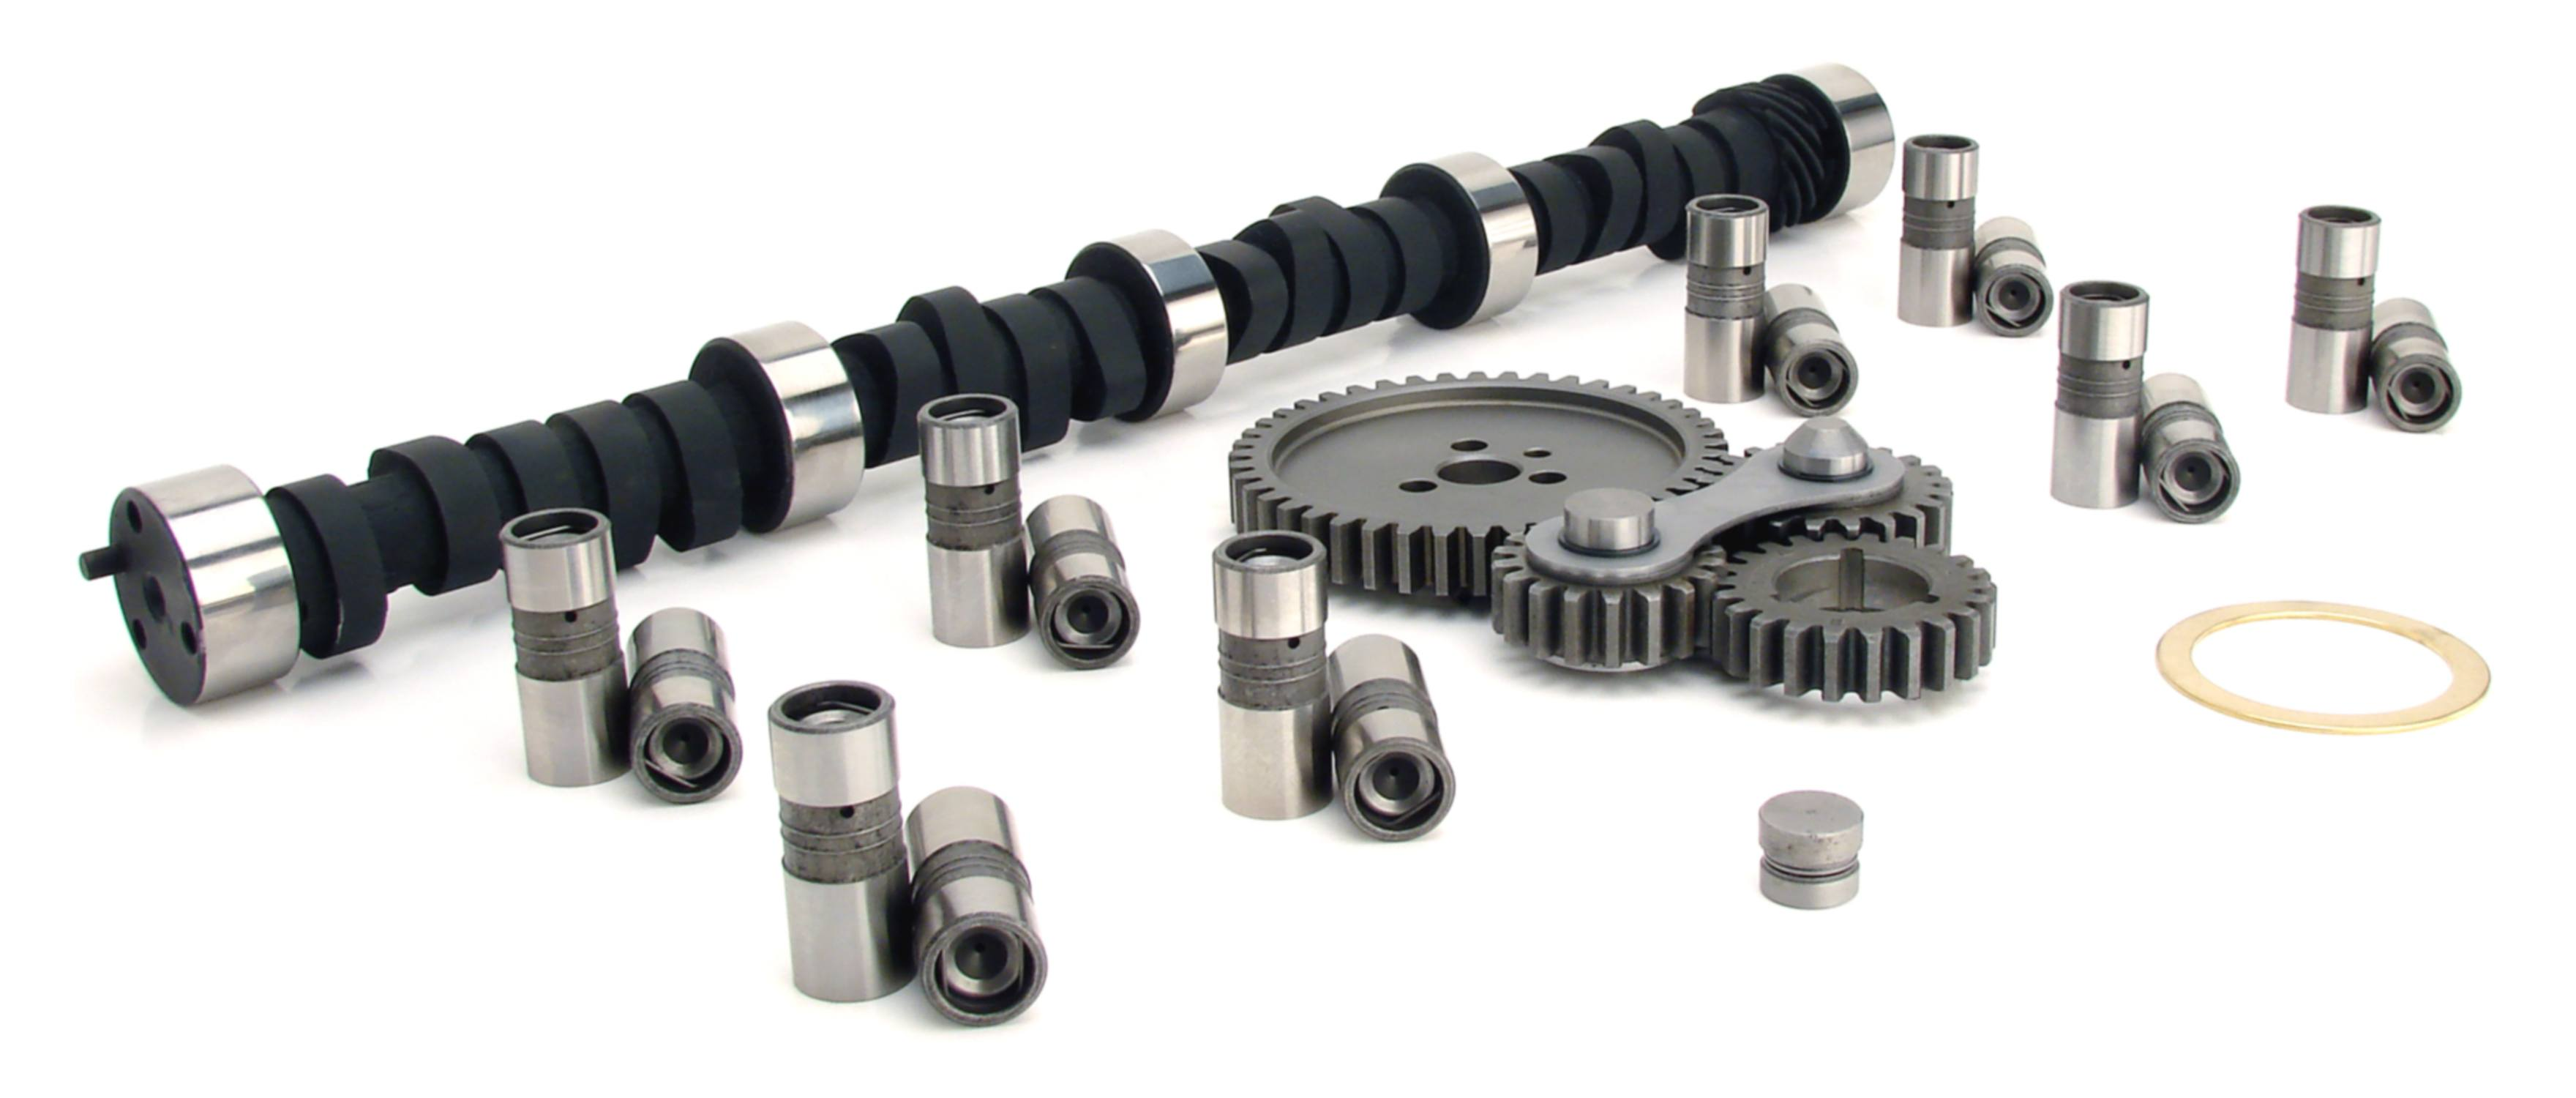 Comp Cams Gk12 601 4 Mutha Thumper Camshaft Small Kit